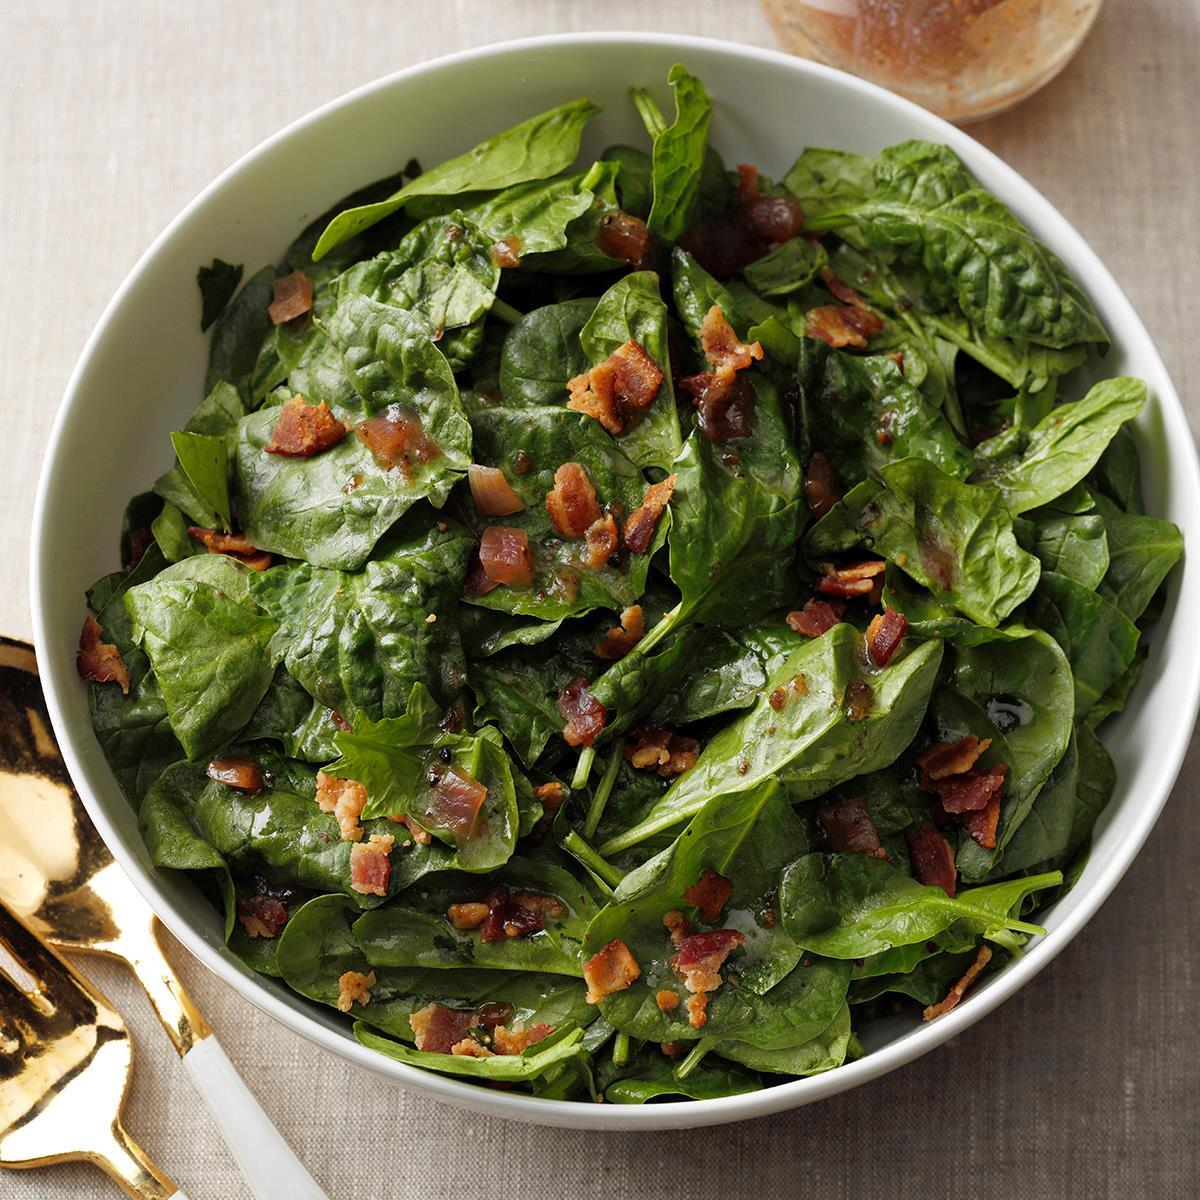 Hearty Spinach Salad With Hot Bacon Dressing Recipe How To Make It Taste Of Home